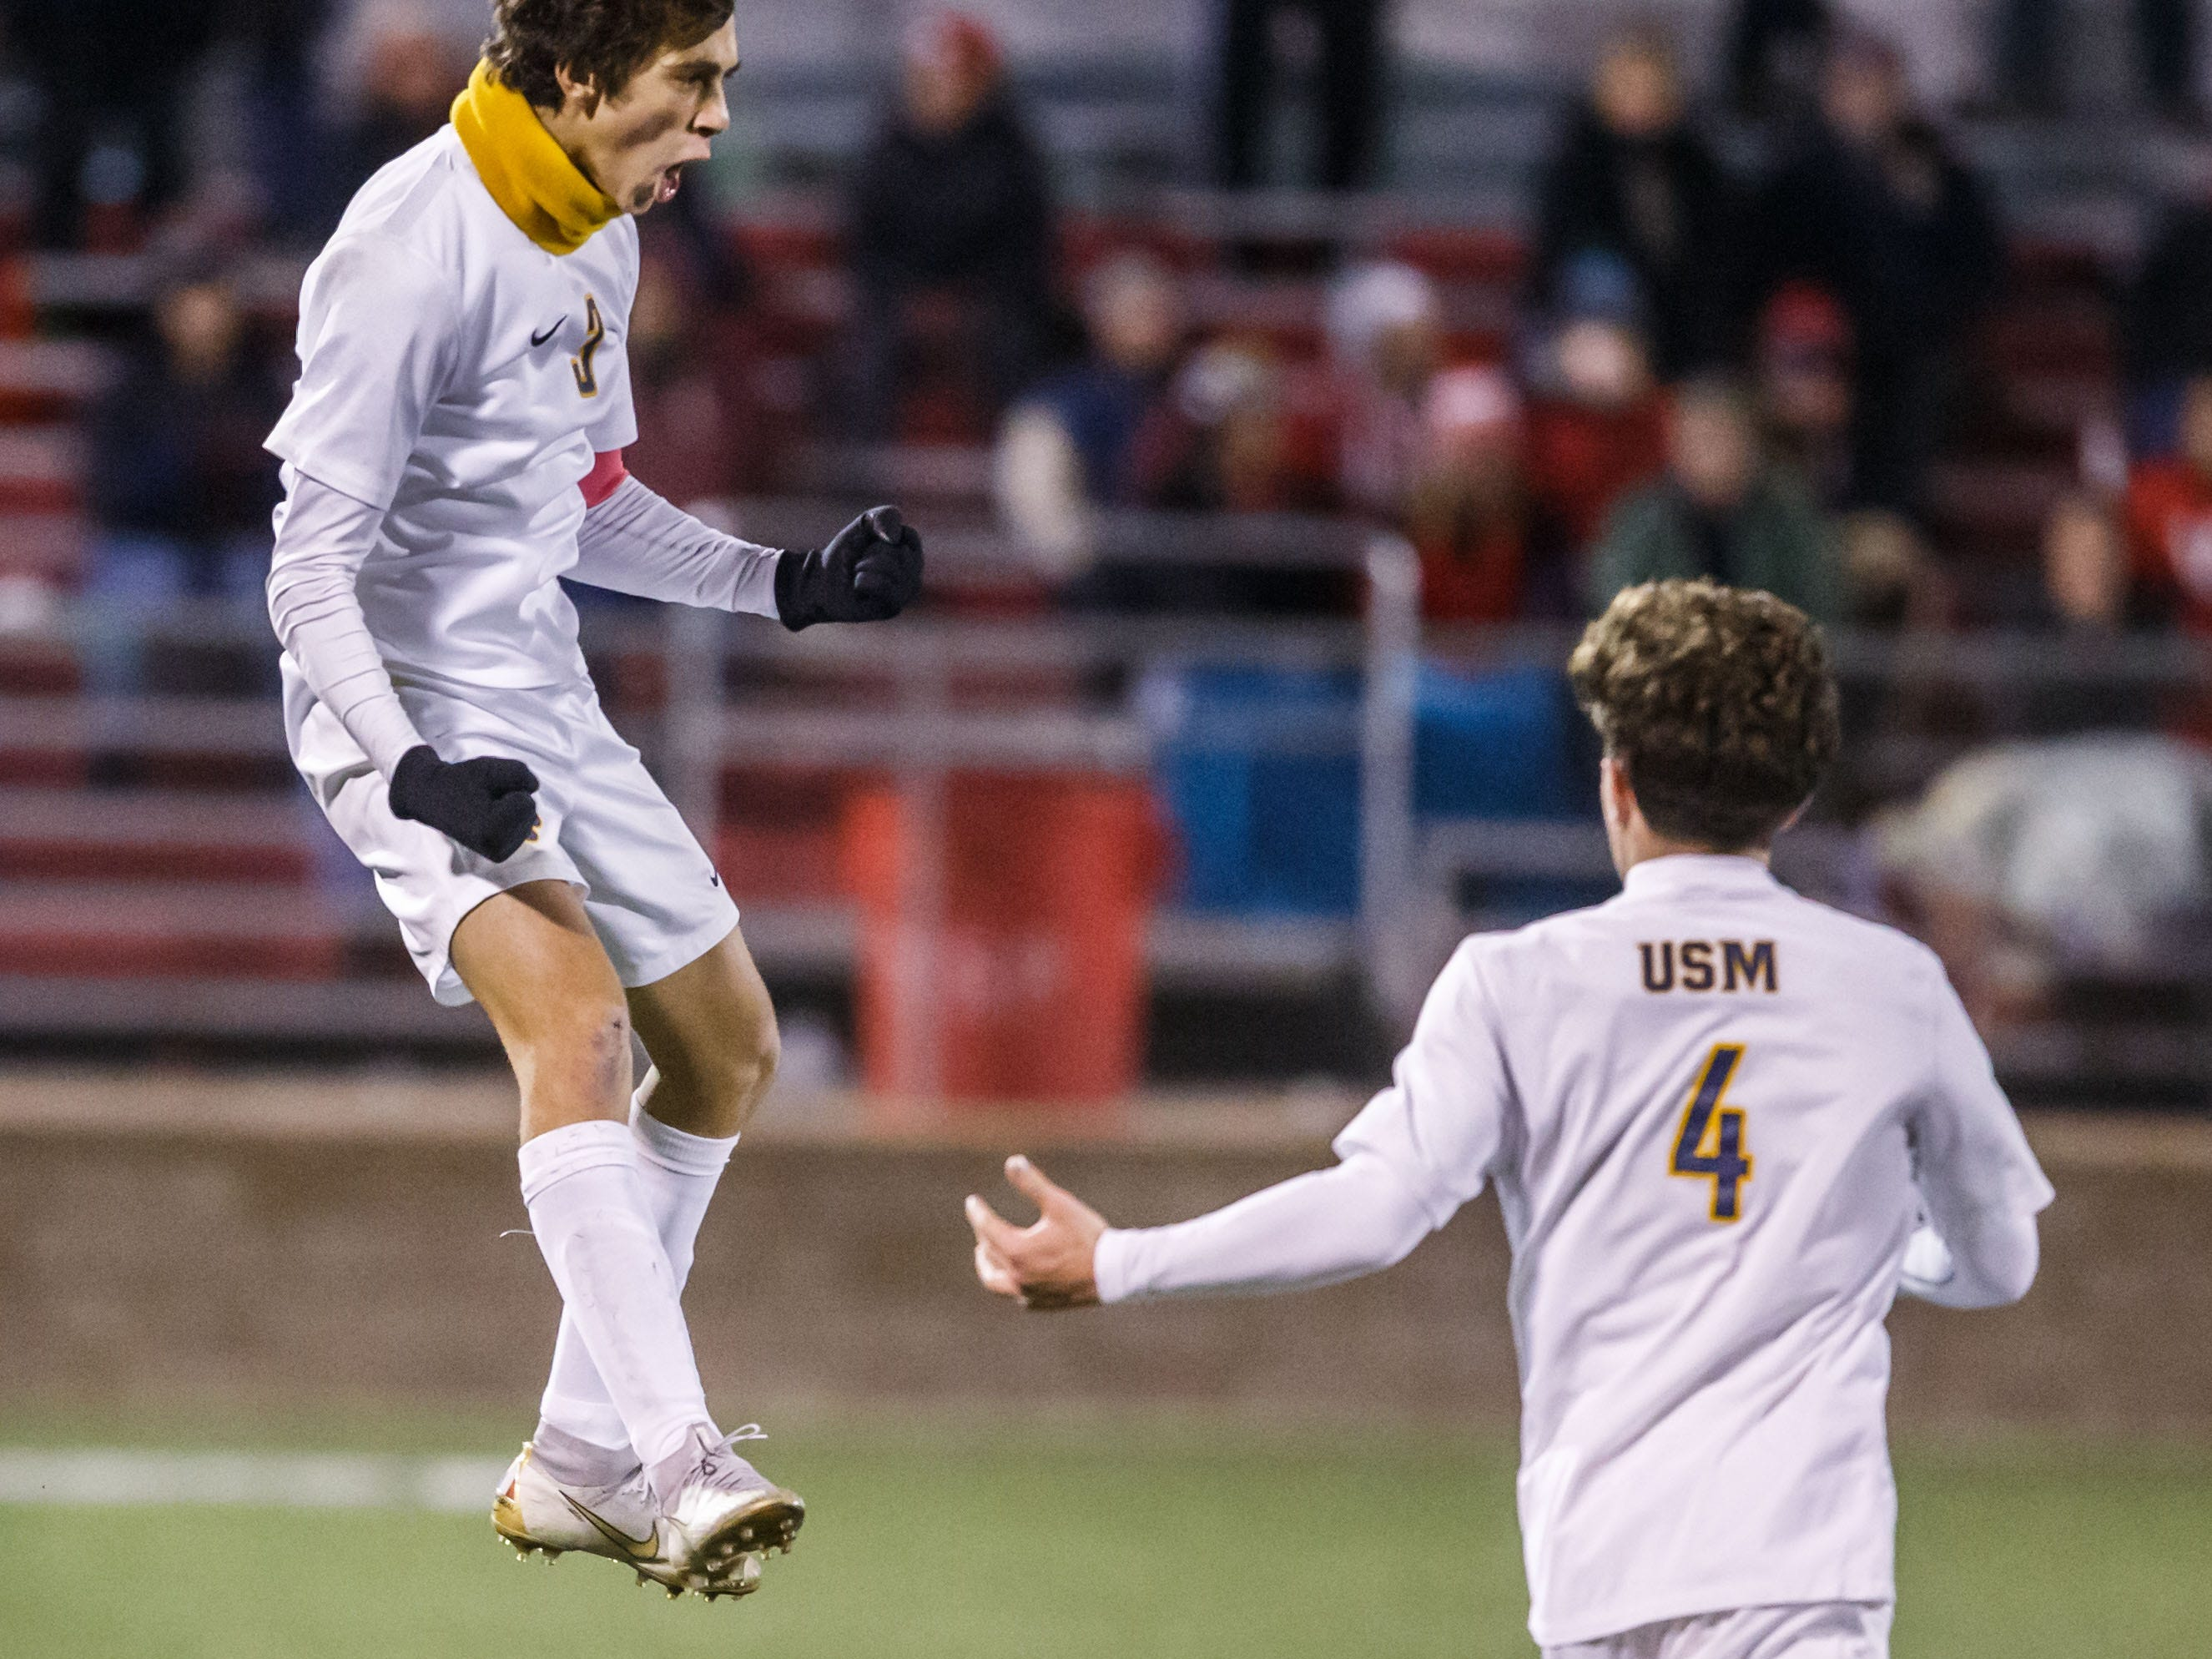 University School of Milwaukee senior Matias Dermond (left) celebrates a goal during the WIAA Division 4 state soccer championship against Amery at Uihlein Soccer Park in Milwaukee on Saturday, Nov. 3, 2018.